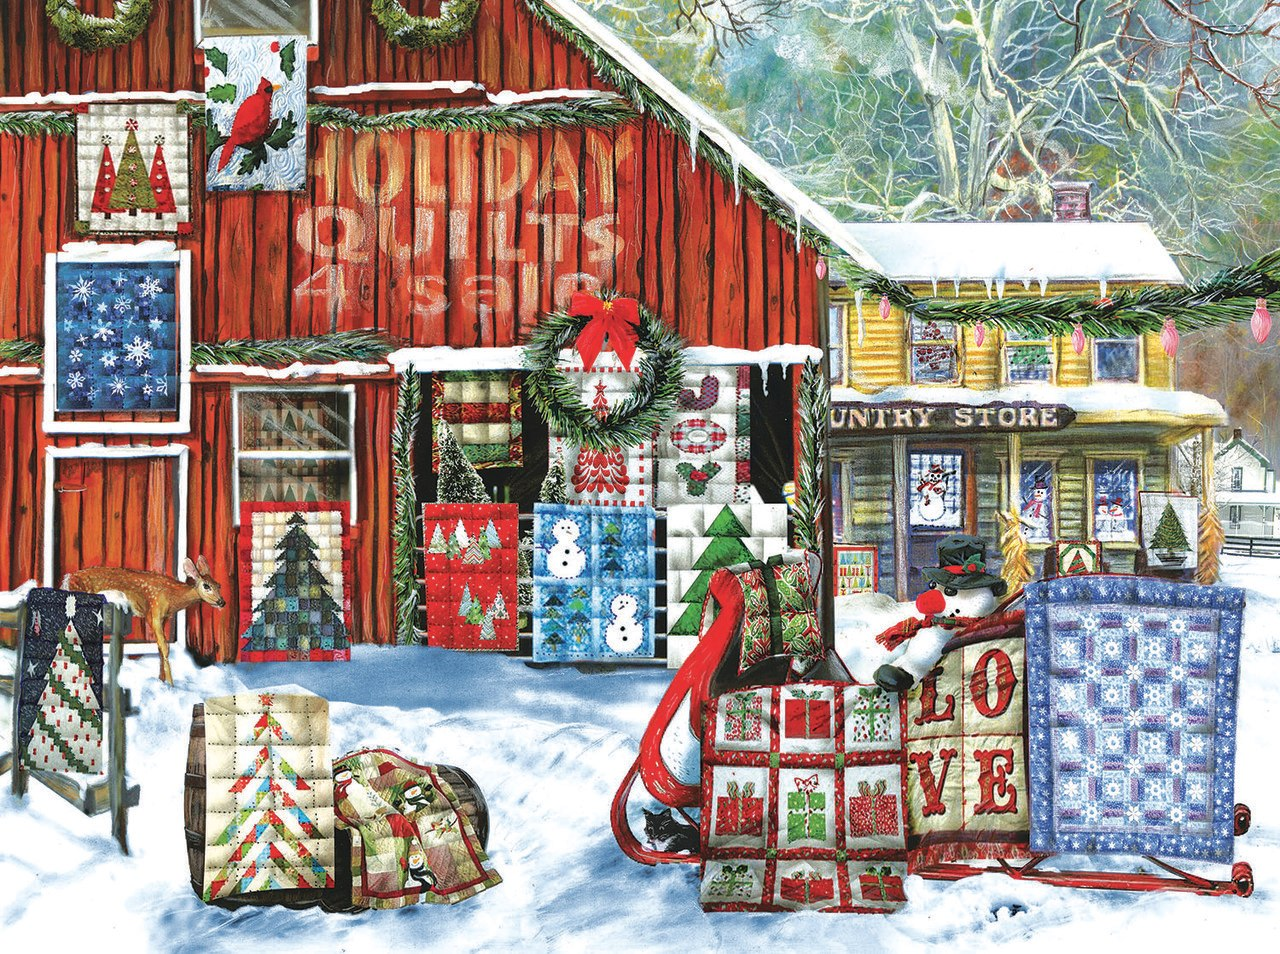 Holiday Quilts - 1000pc Jigsaw Puzzle by Sunsout  			  					NEW